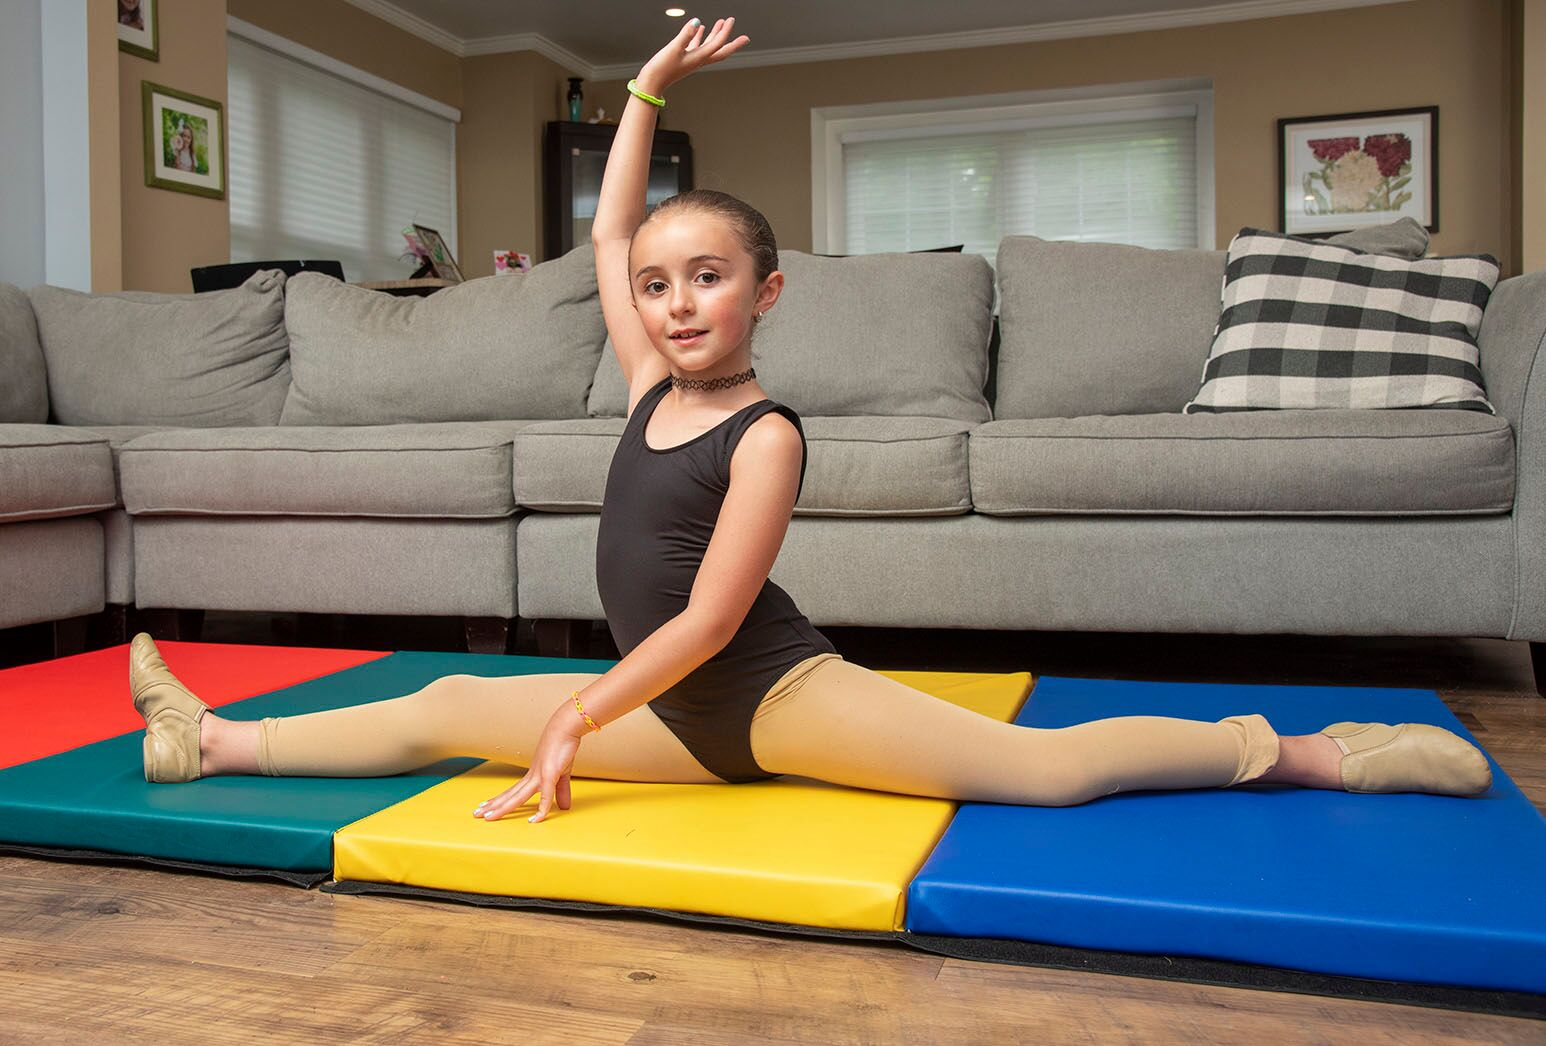 Young girl in black leotard doing a split on a gymnastics mat in her home.